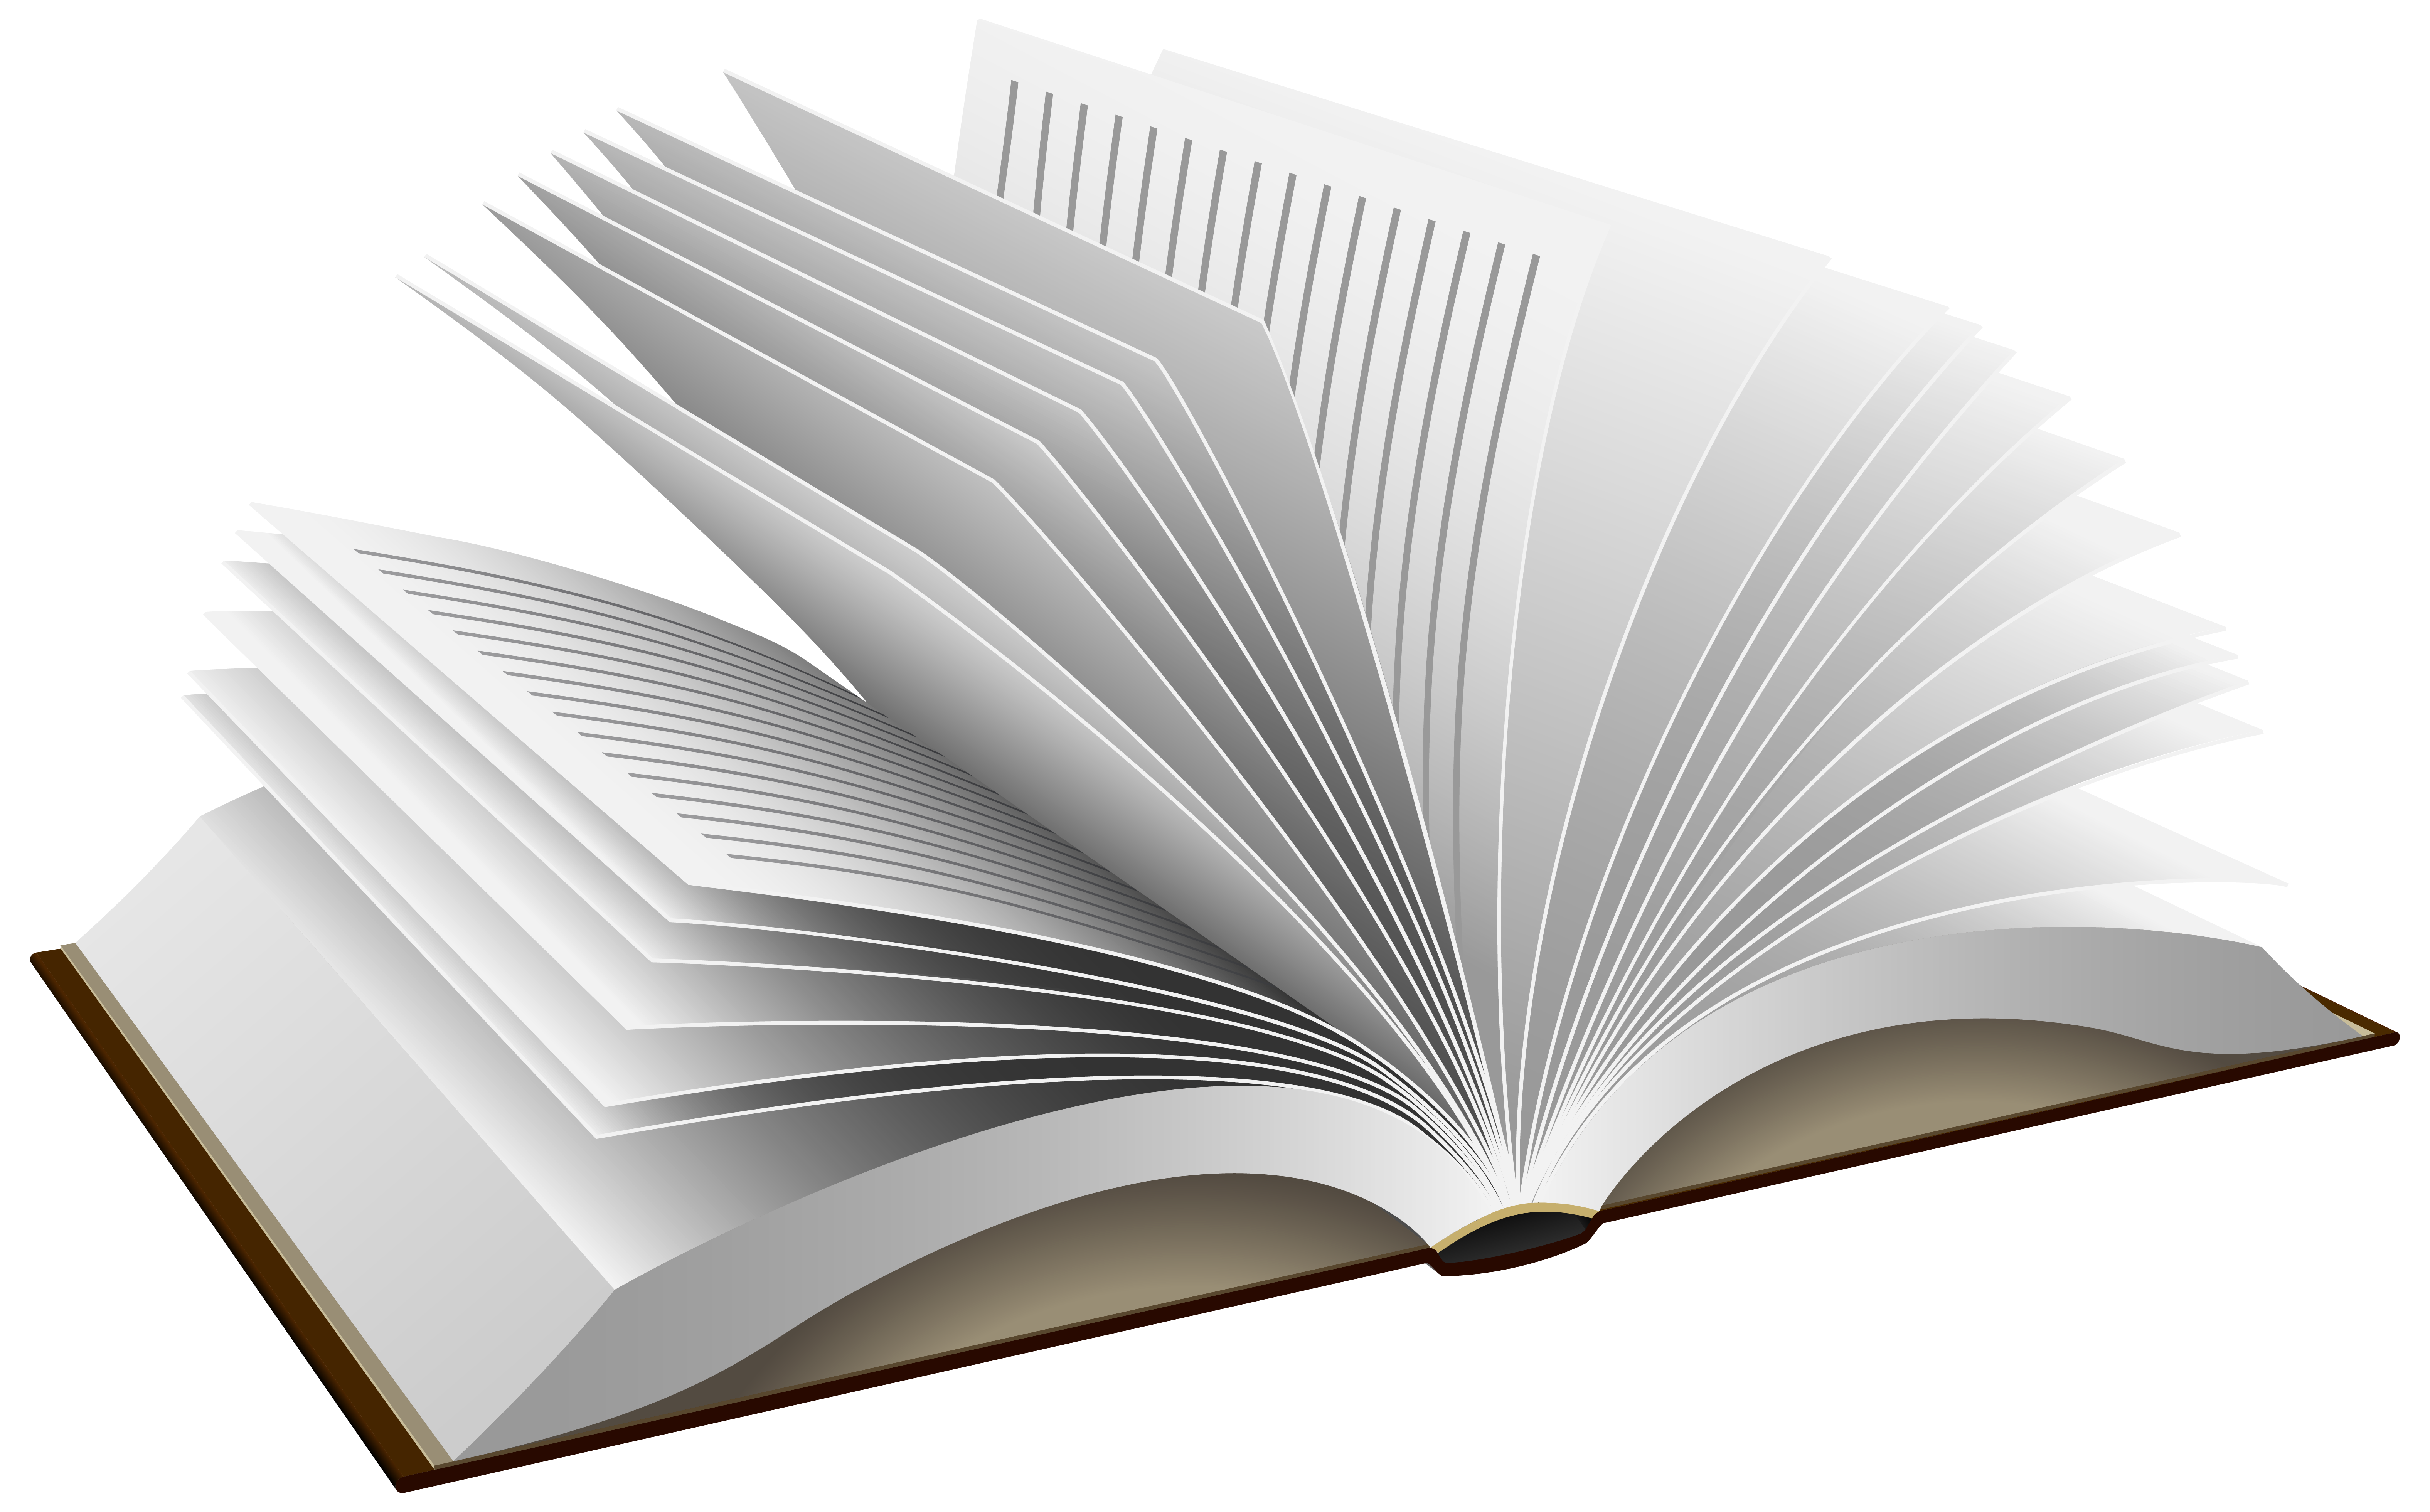 Books clipart png. Book best web